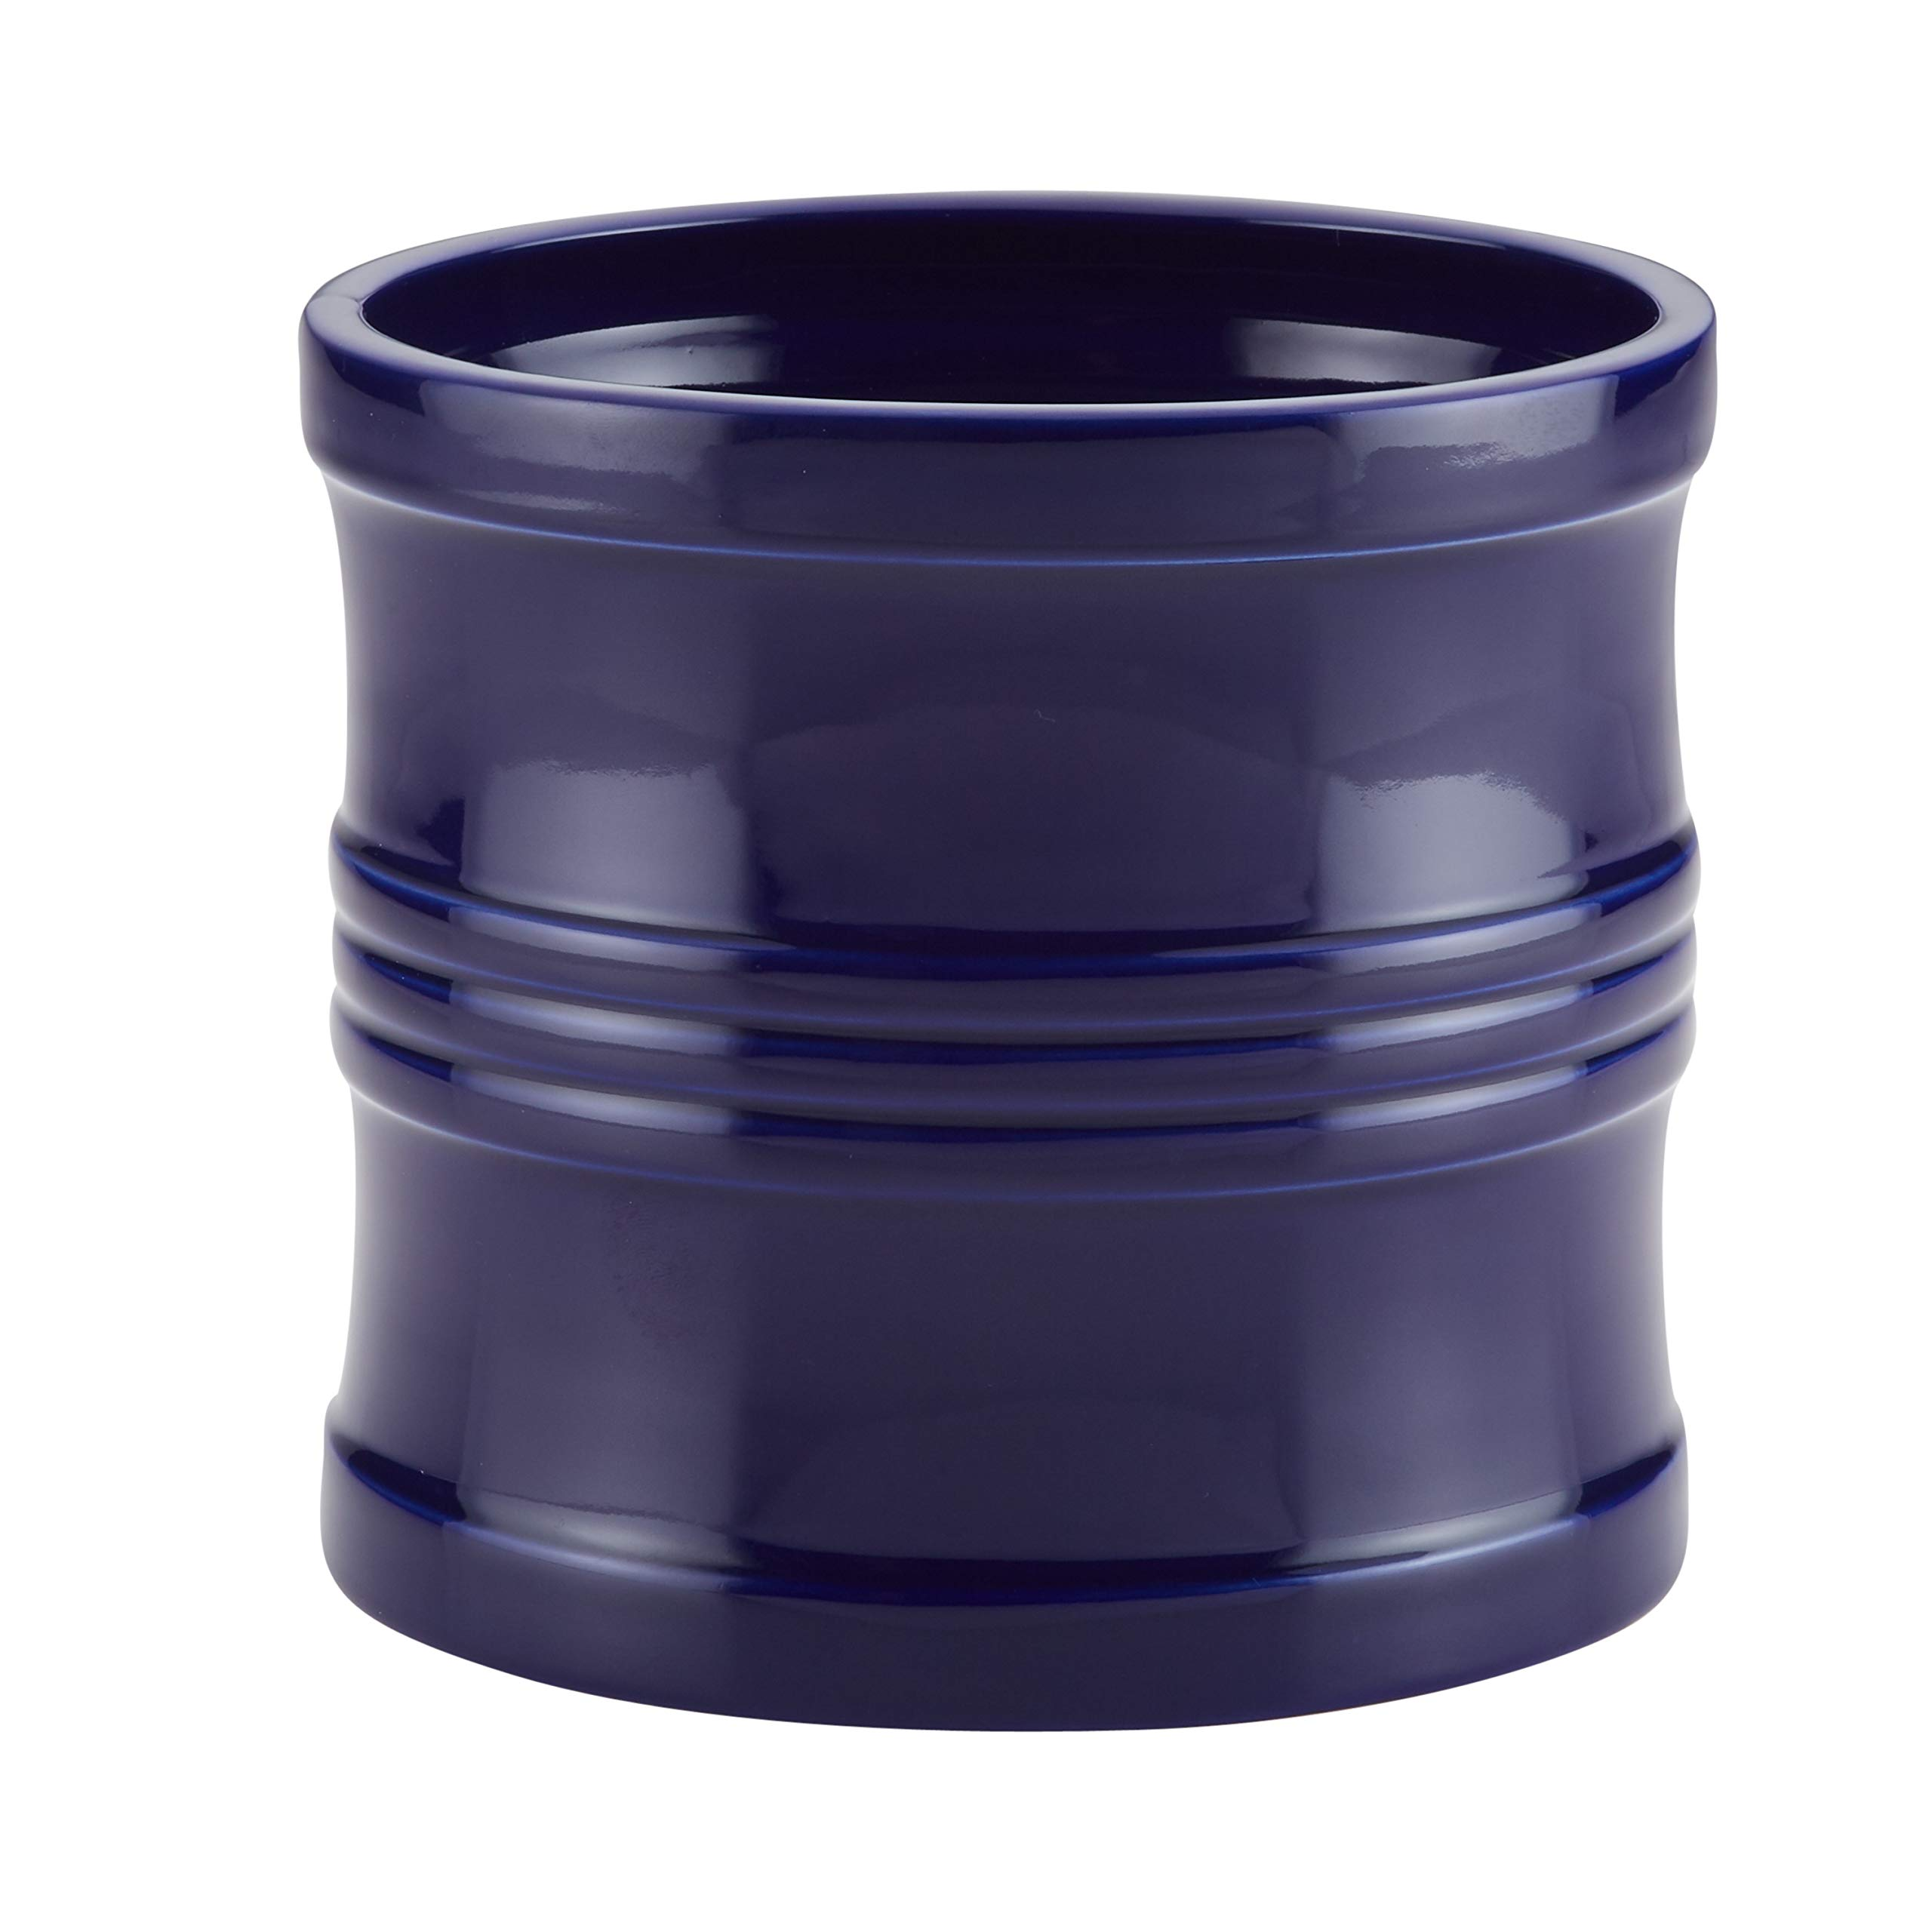 Circulon Ceramics Tool Crock with Partition Insert, 7.5-Inch, Navy Blue by Circulon